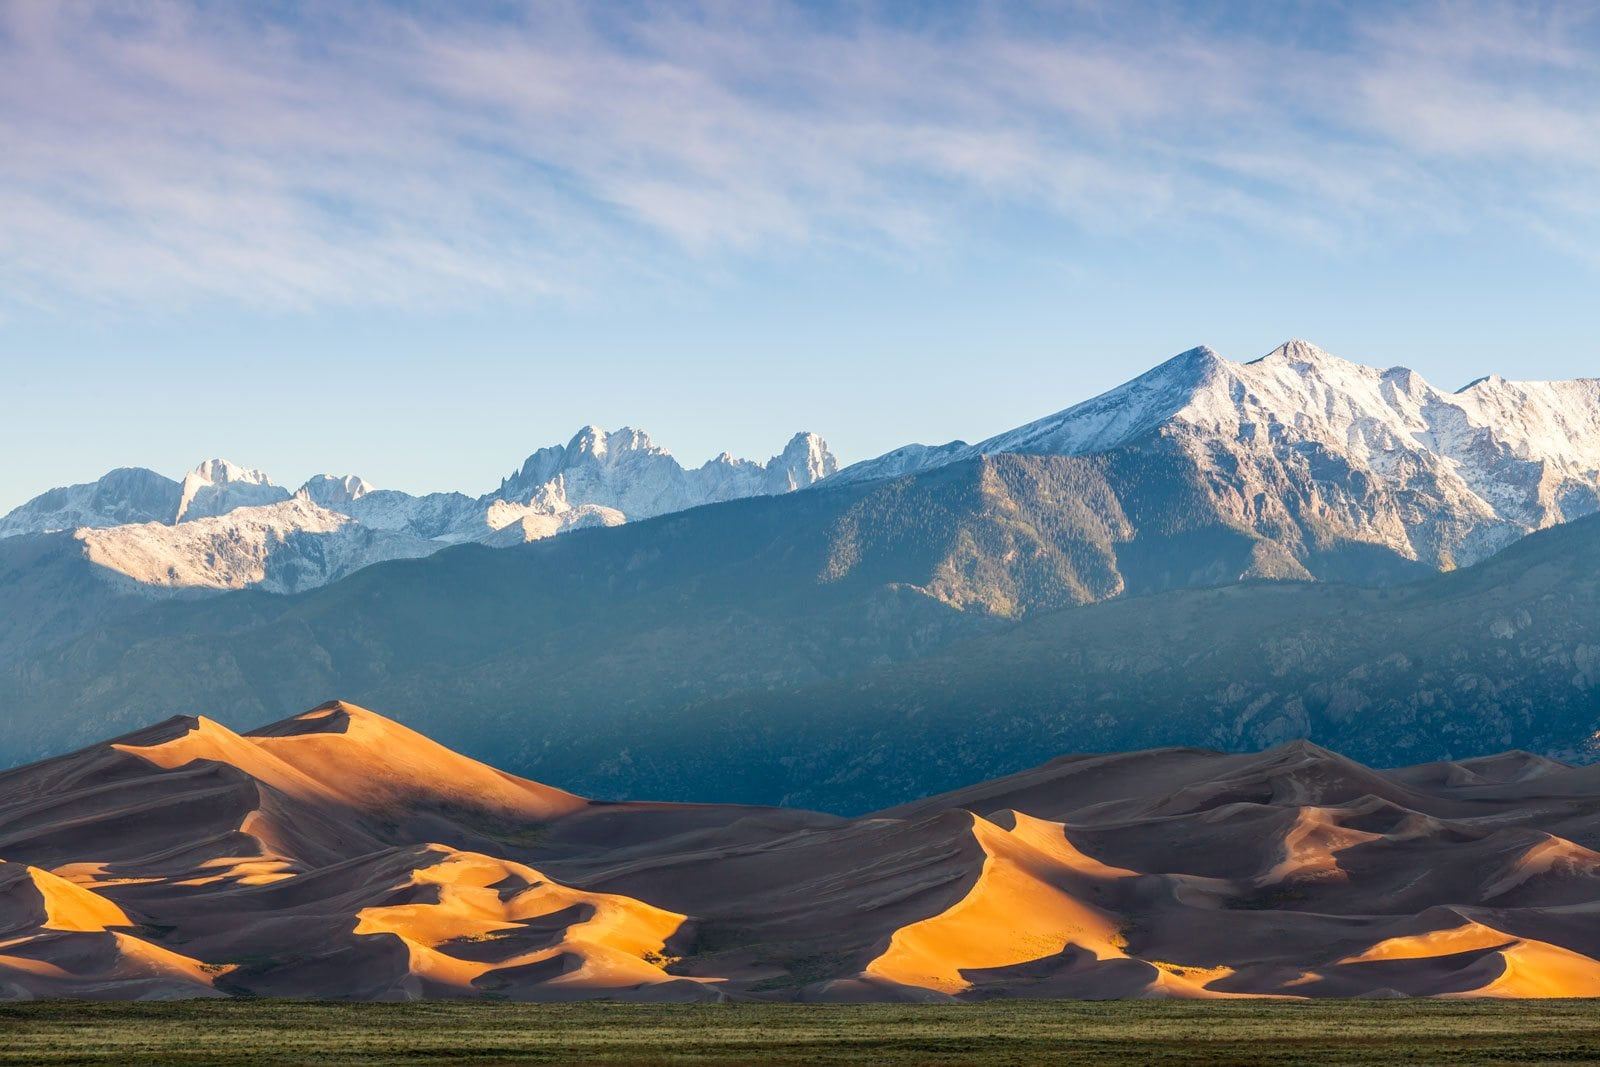 The Most Dog-Friendly National Parks - Bearfoot Theory |Great Sand Dunes National Park